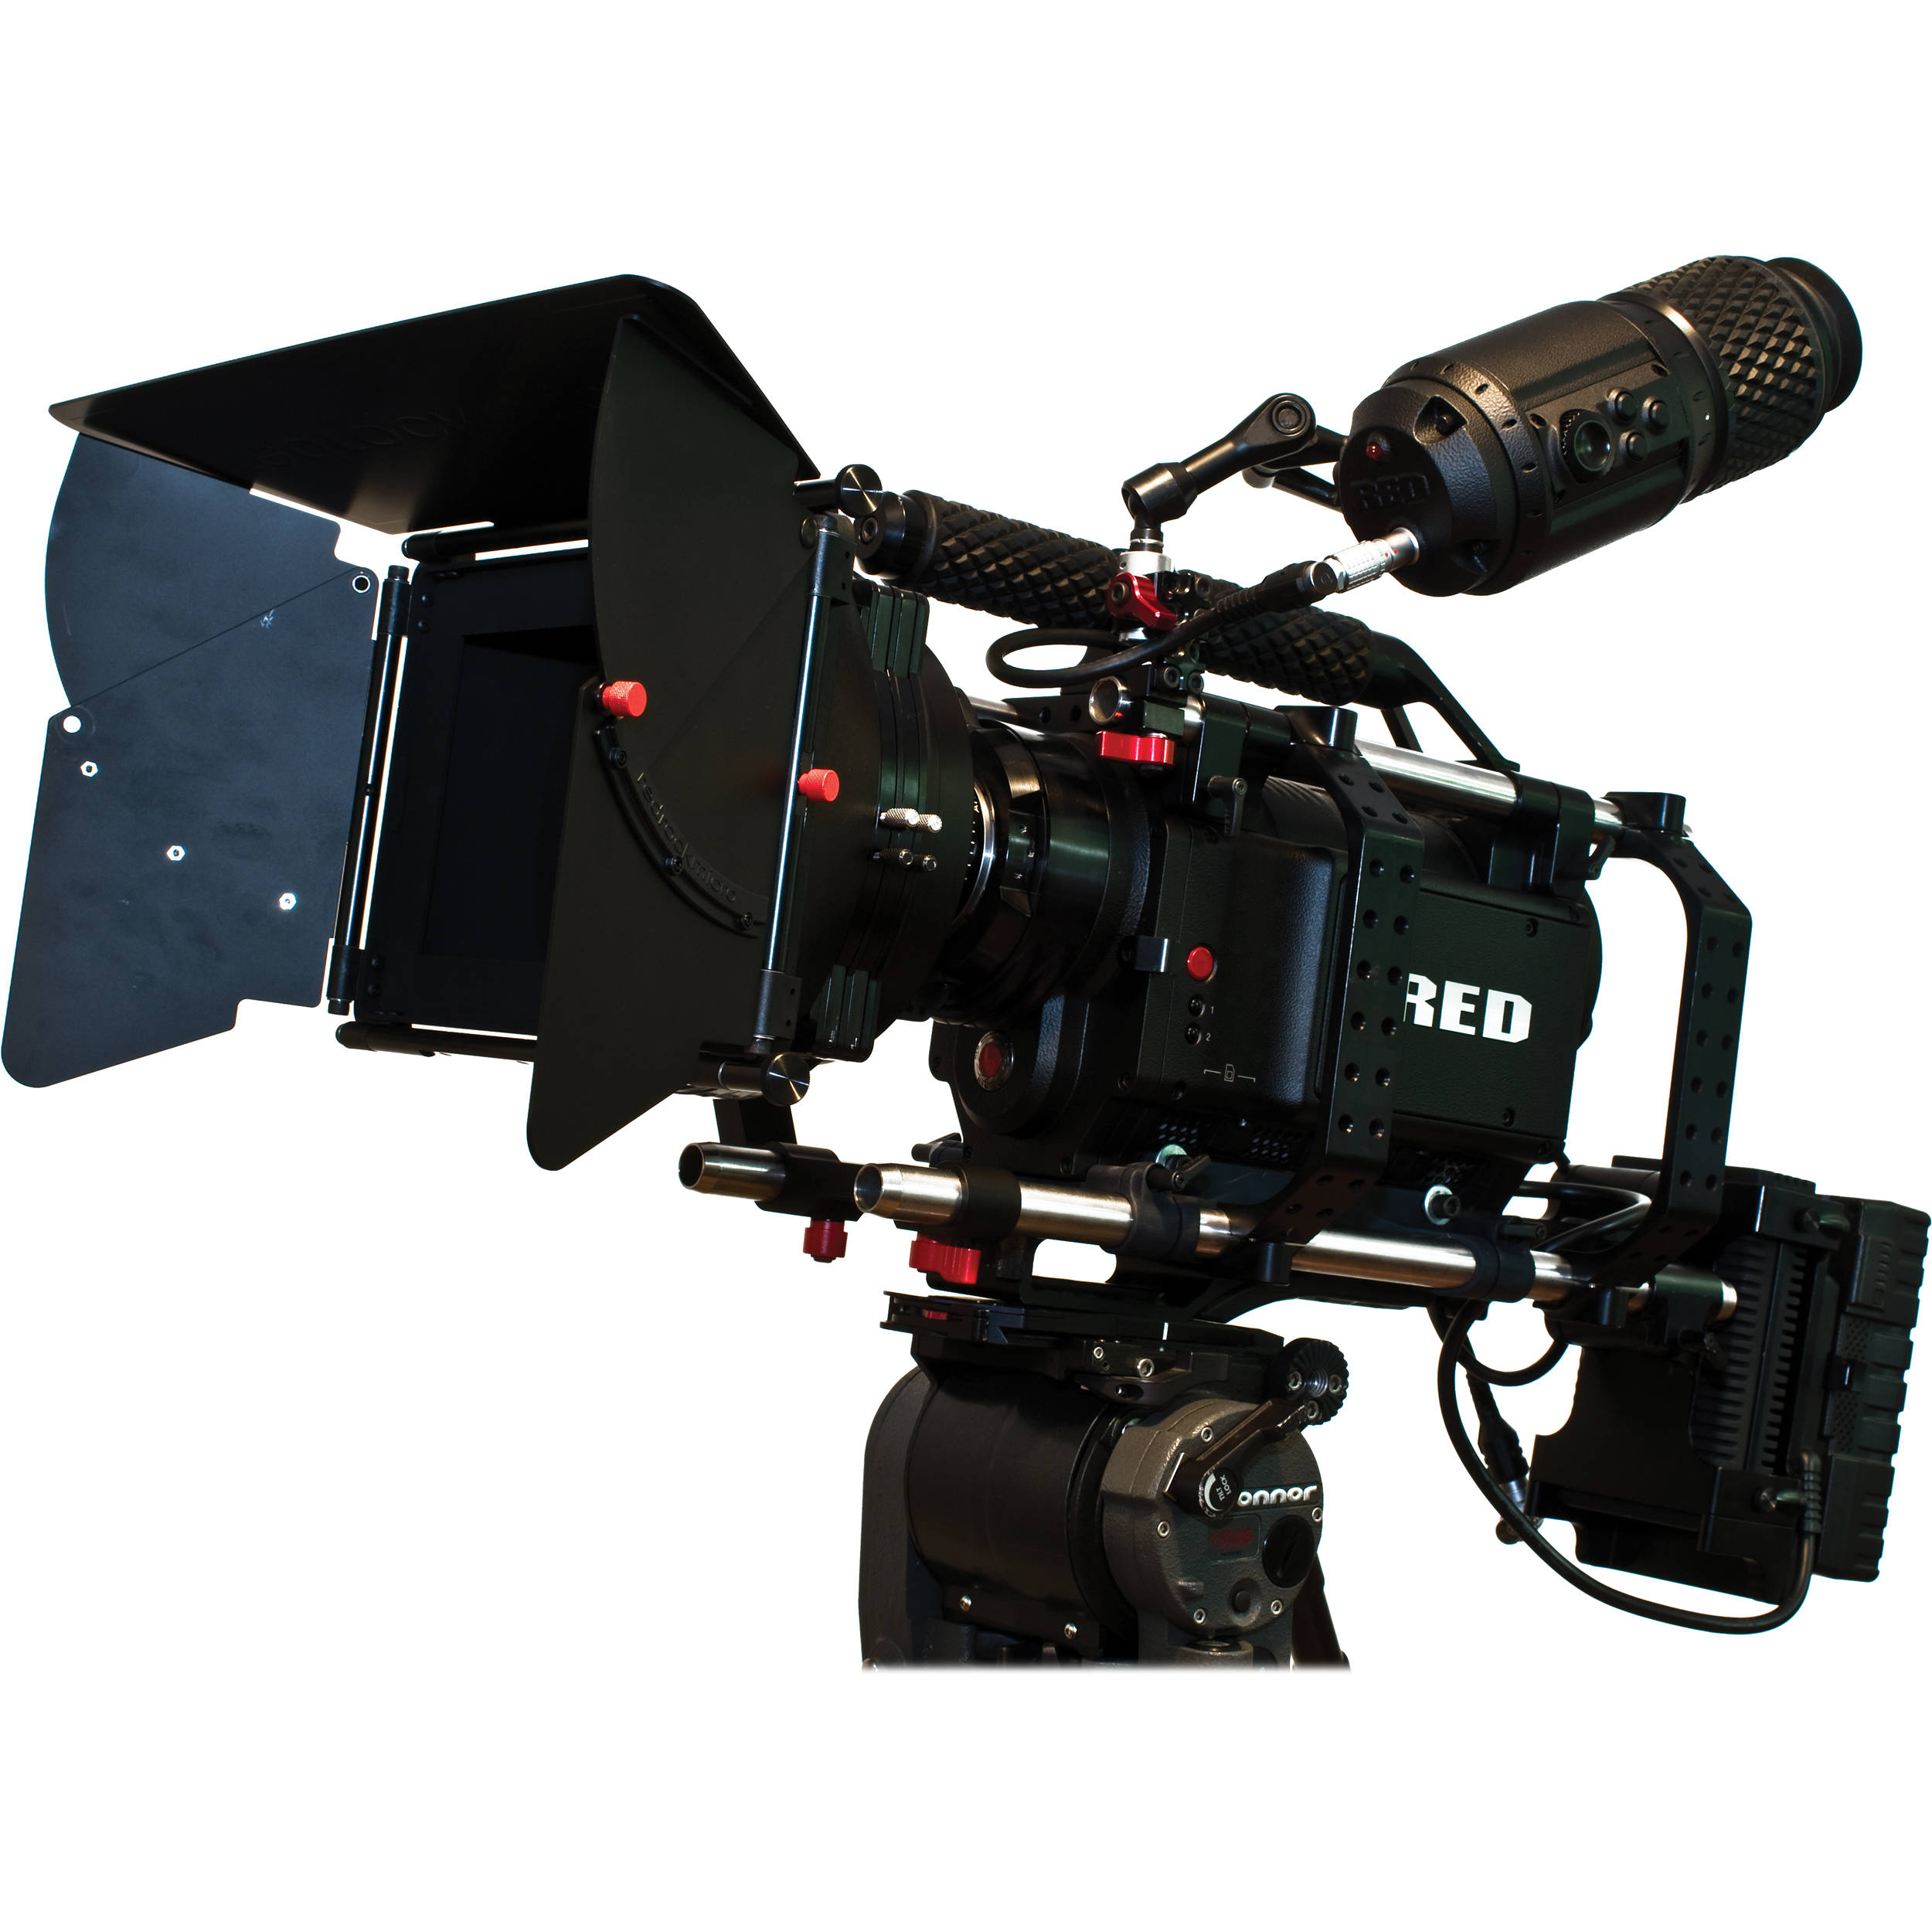 redrock micro micromattebox deluxe bundle for red one 8 003 0044 rh bhphotovideo com Red Epic Camera Red Epic Camera